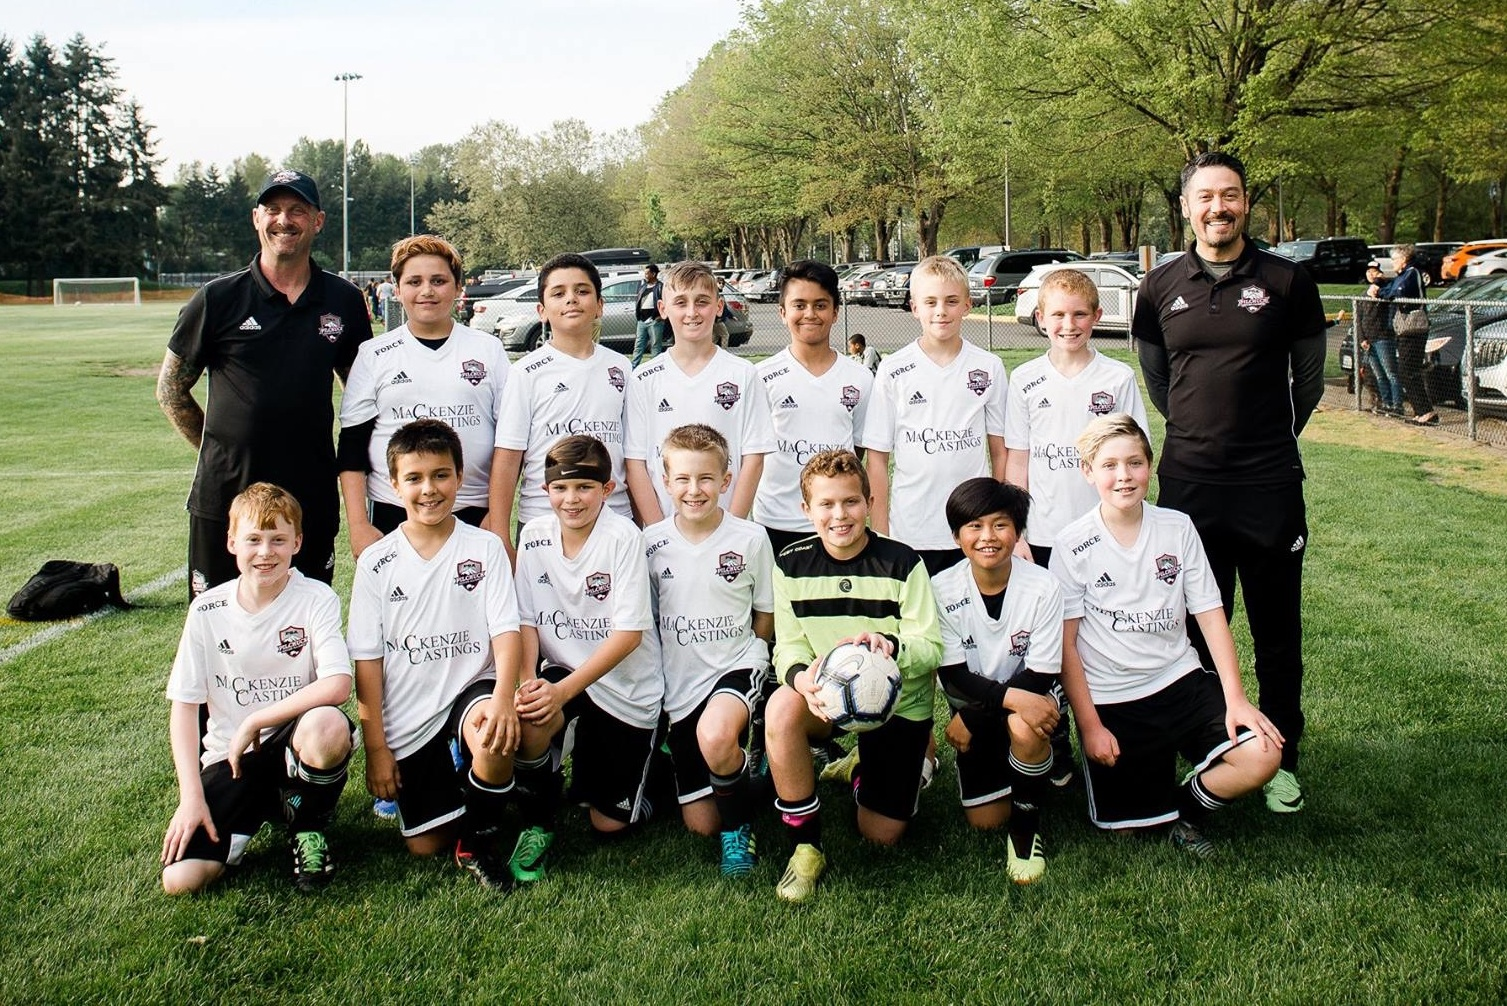 Pilchuck Soccer Alliance FORCE '07 Boys 2018/2019 at Puget Sound Premier League Washington Cup